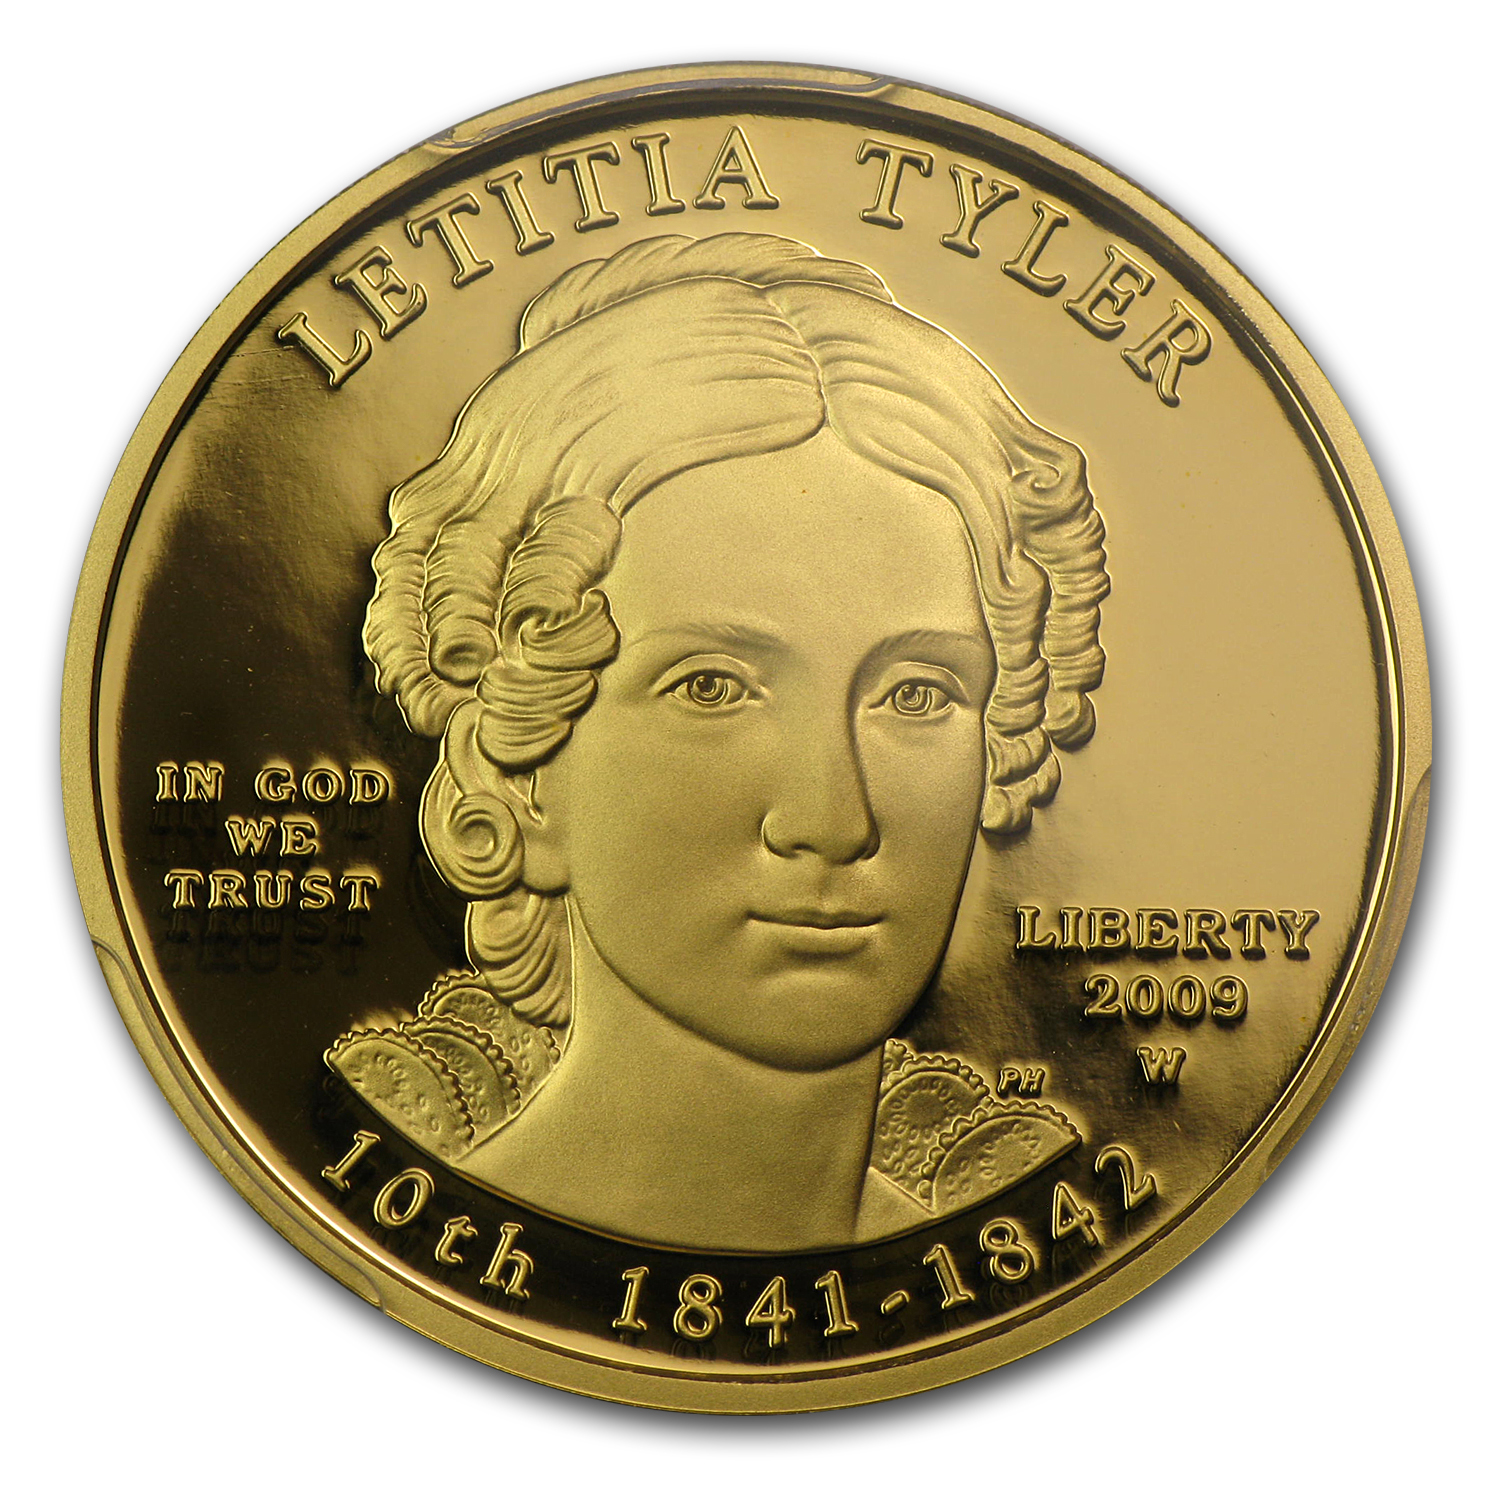 2009-W 1/2 oz Proof Gold Letitia Tyler PR-70 PCGS